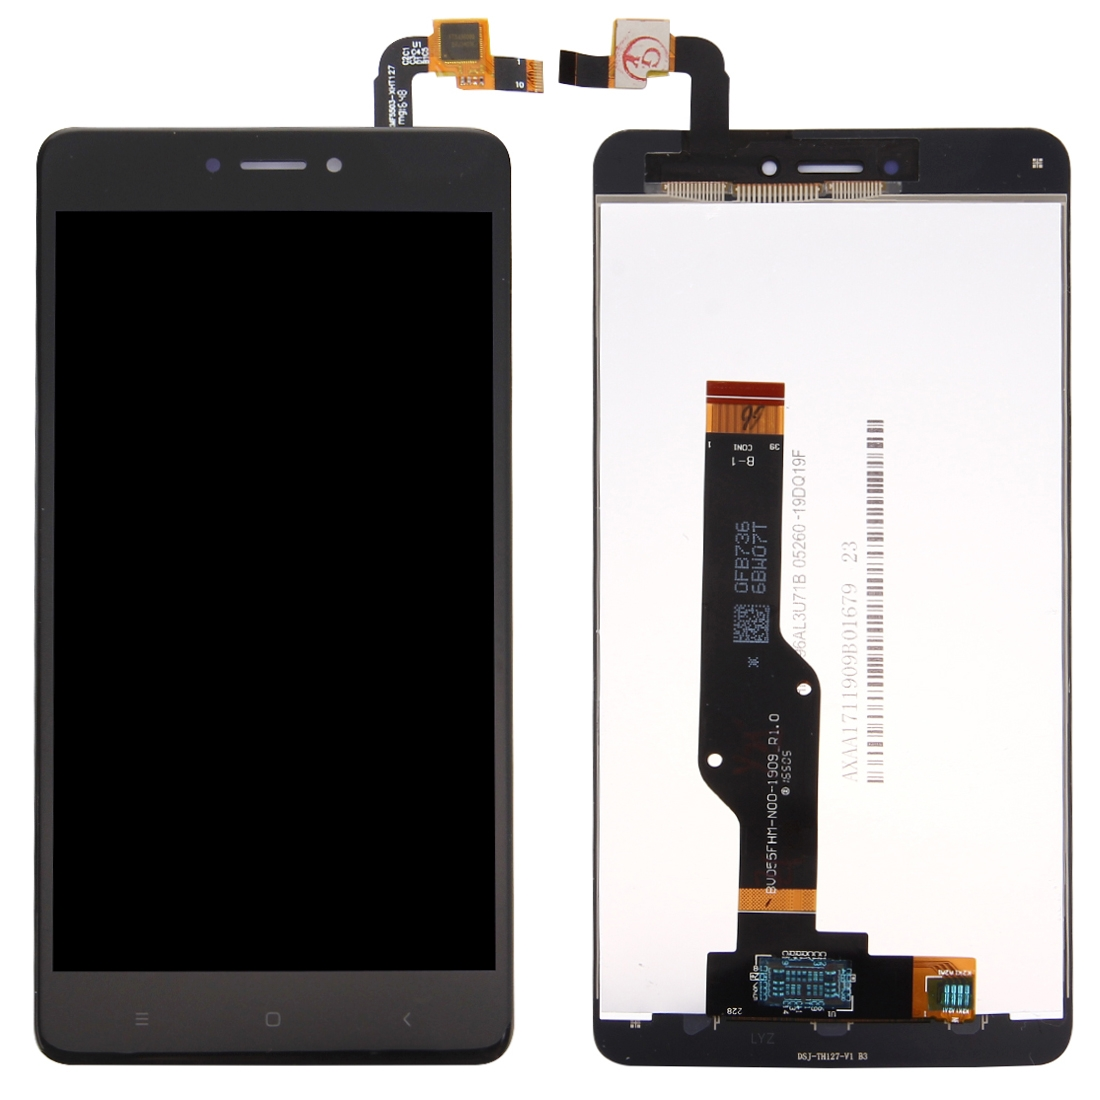 f r xiaomi redmi note 4x reparatur display full lcd. Black Bedroom Furniture Sets. Home Design Ideas